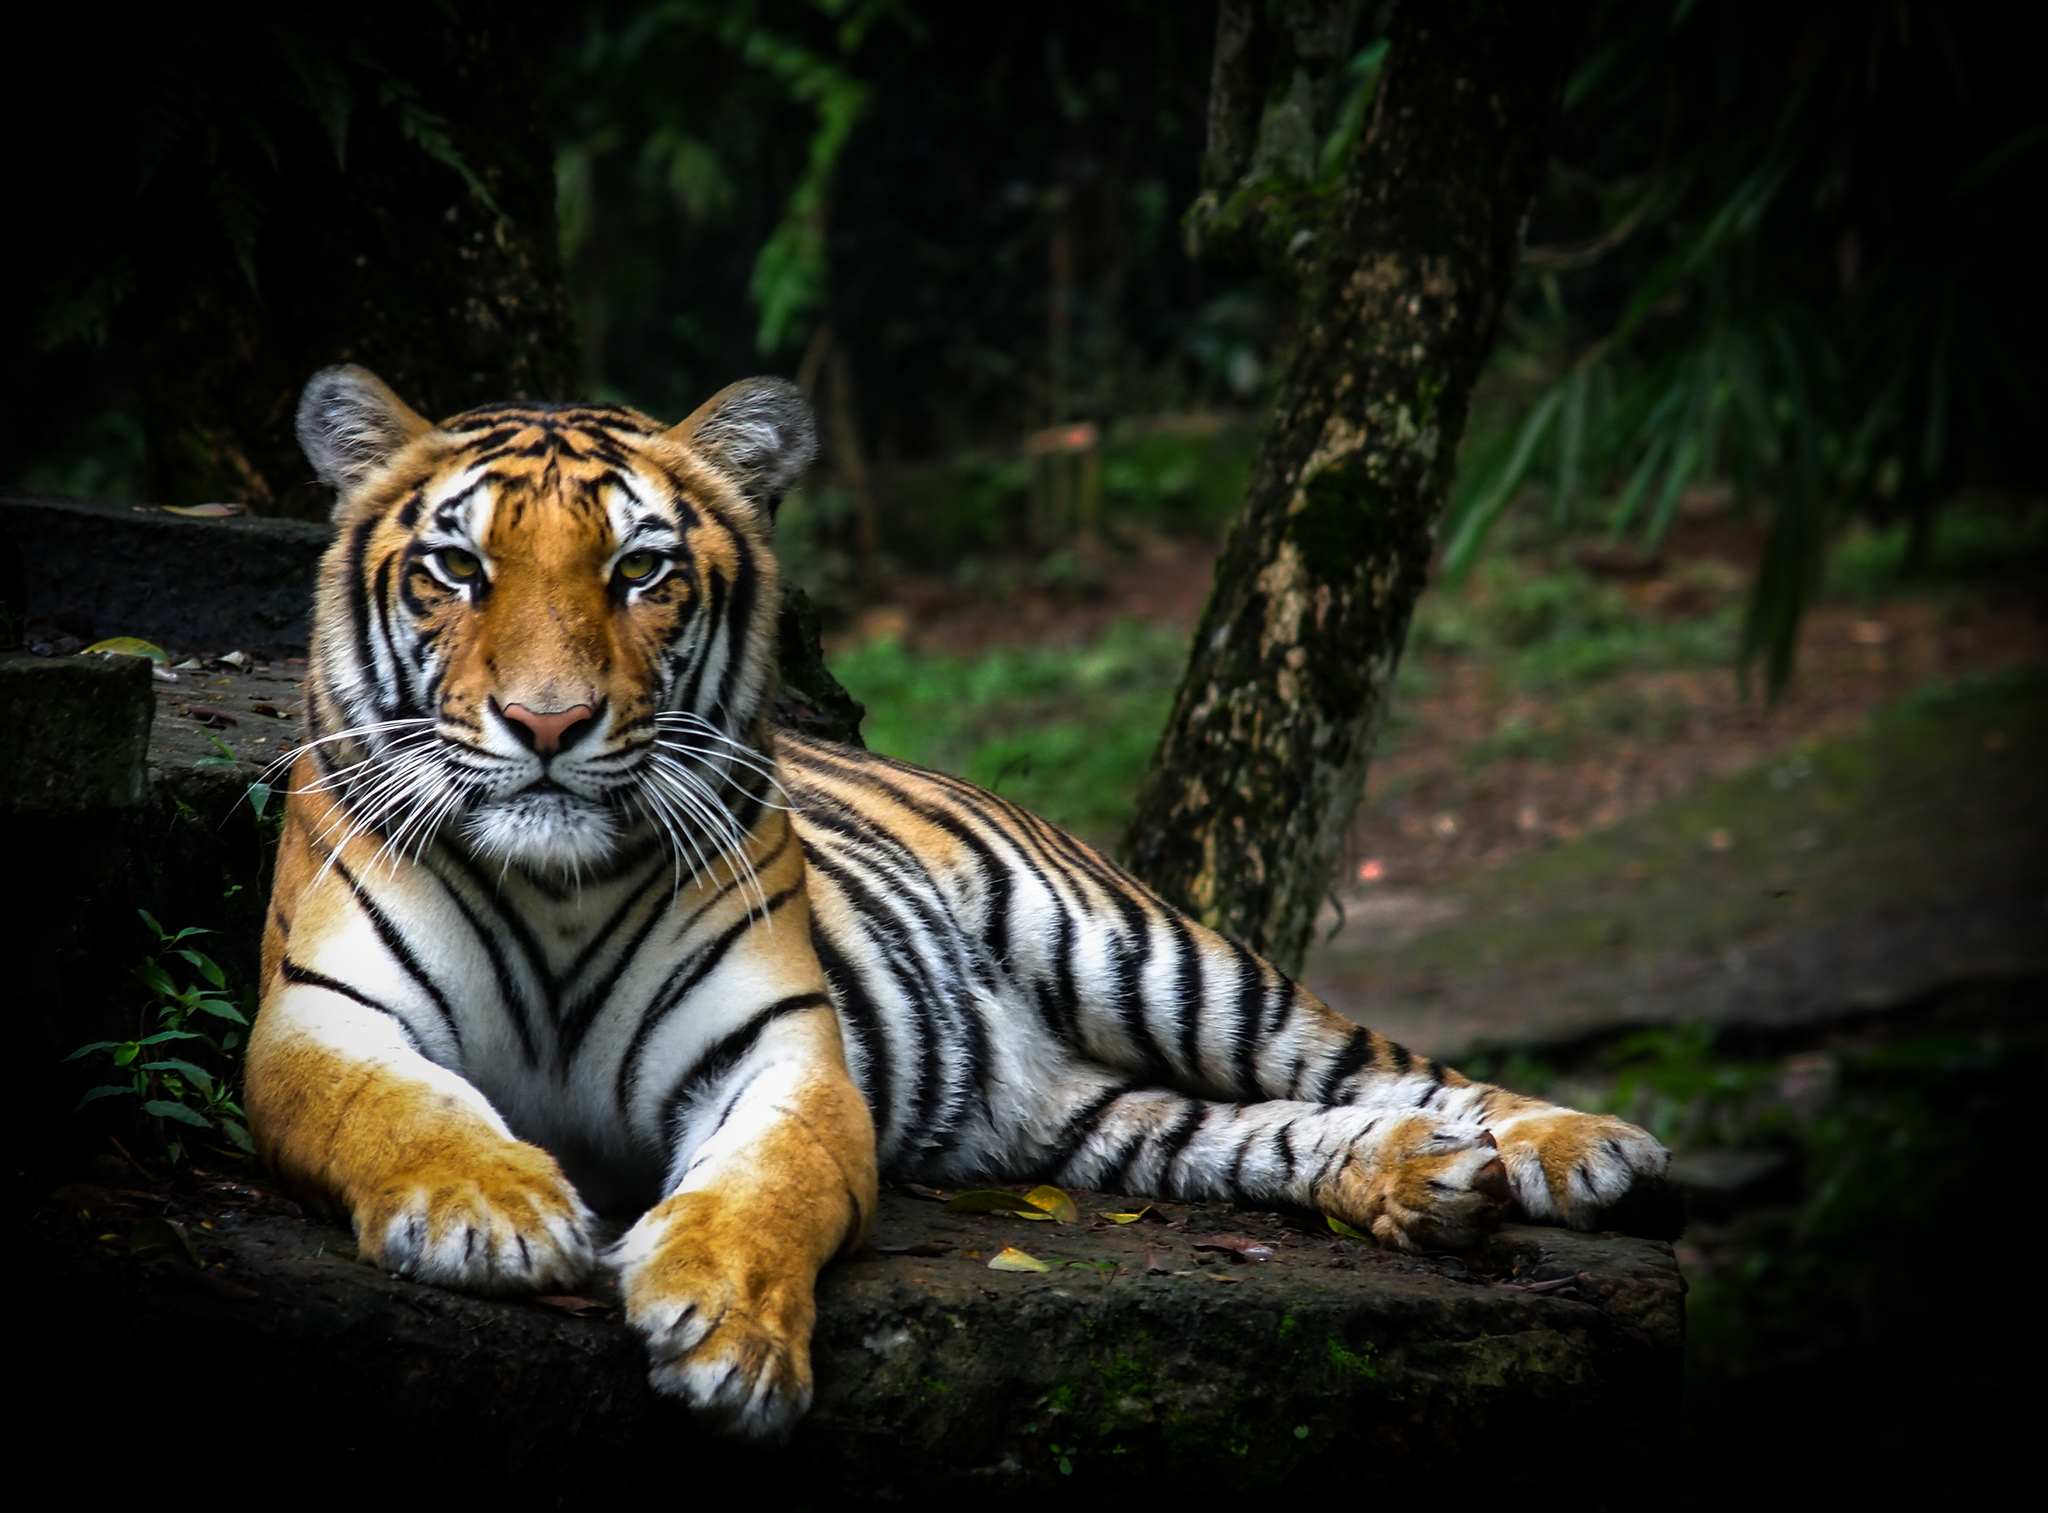 International Tiger Day, regal Sumatran tiger, resting, at peace, wilderness, beautiful stripes